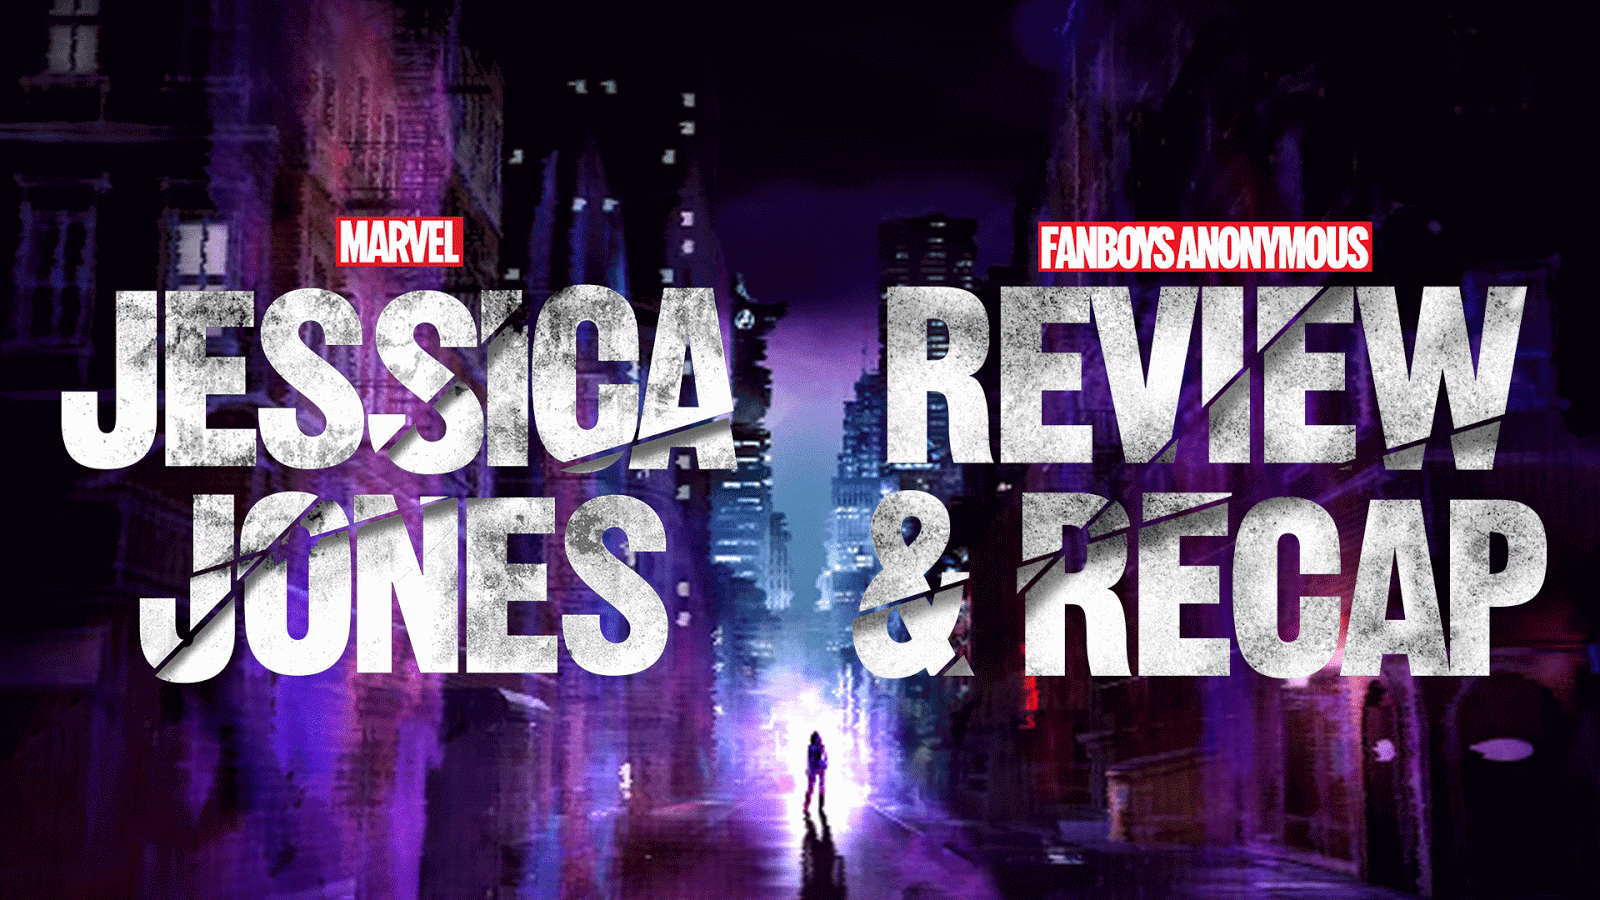 review Marvel's Jessica Jones Season 1 podcast